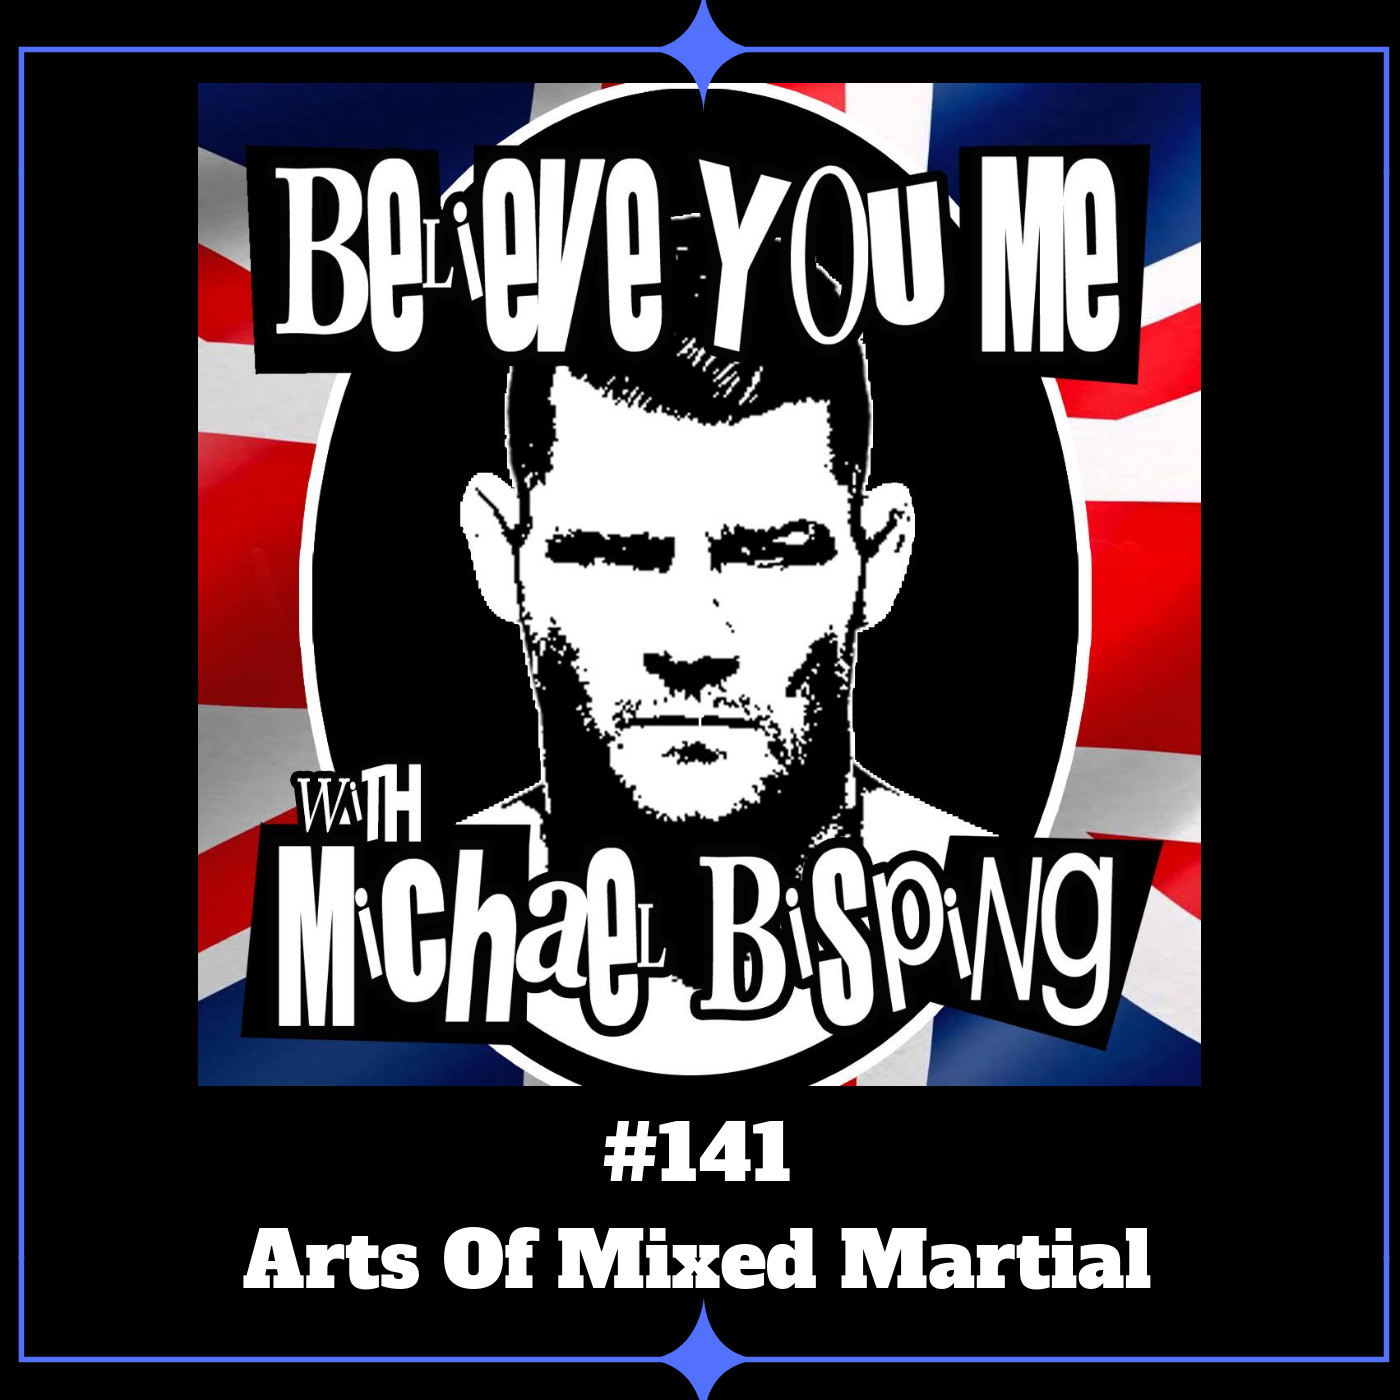 141 - The Art Of Mixed Martial